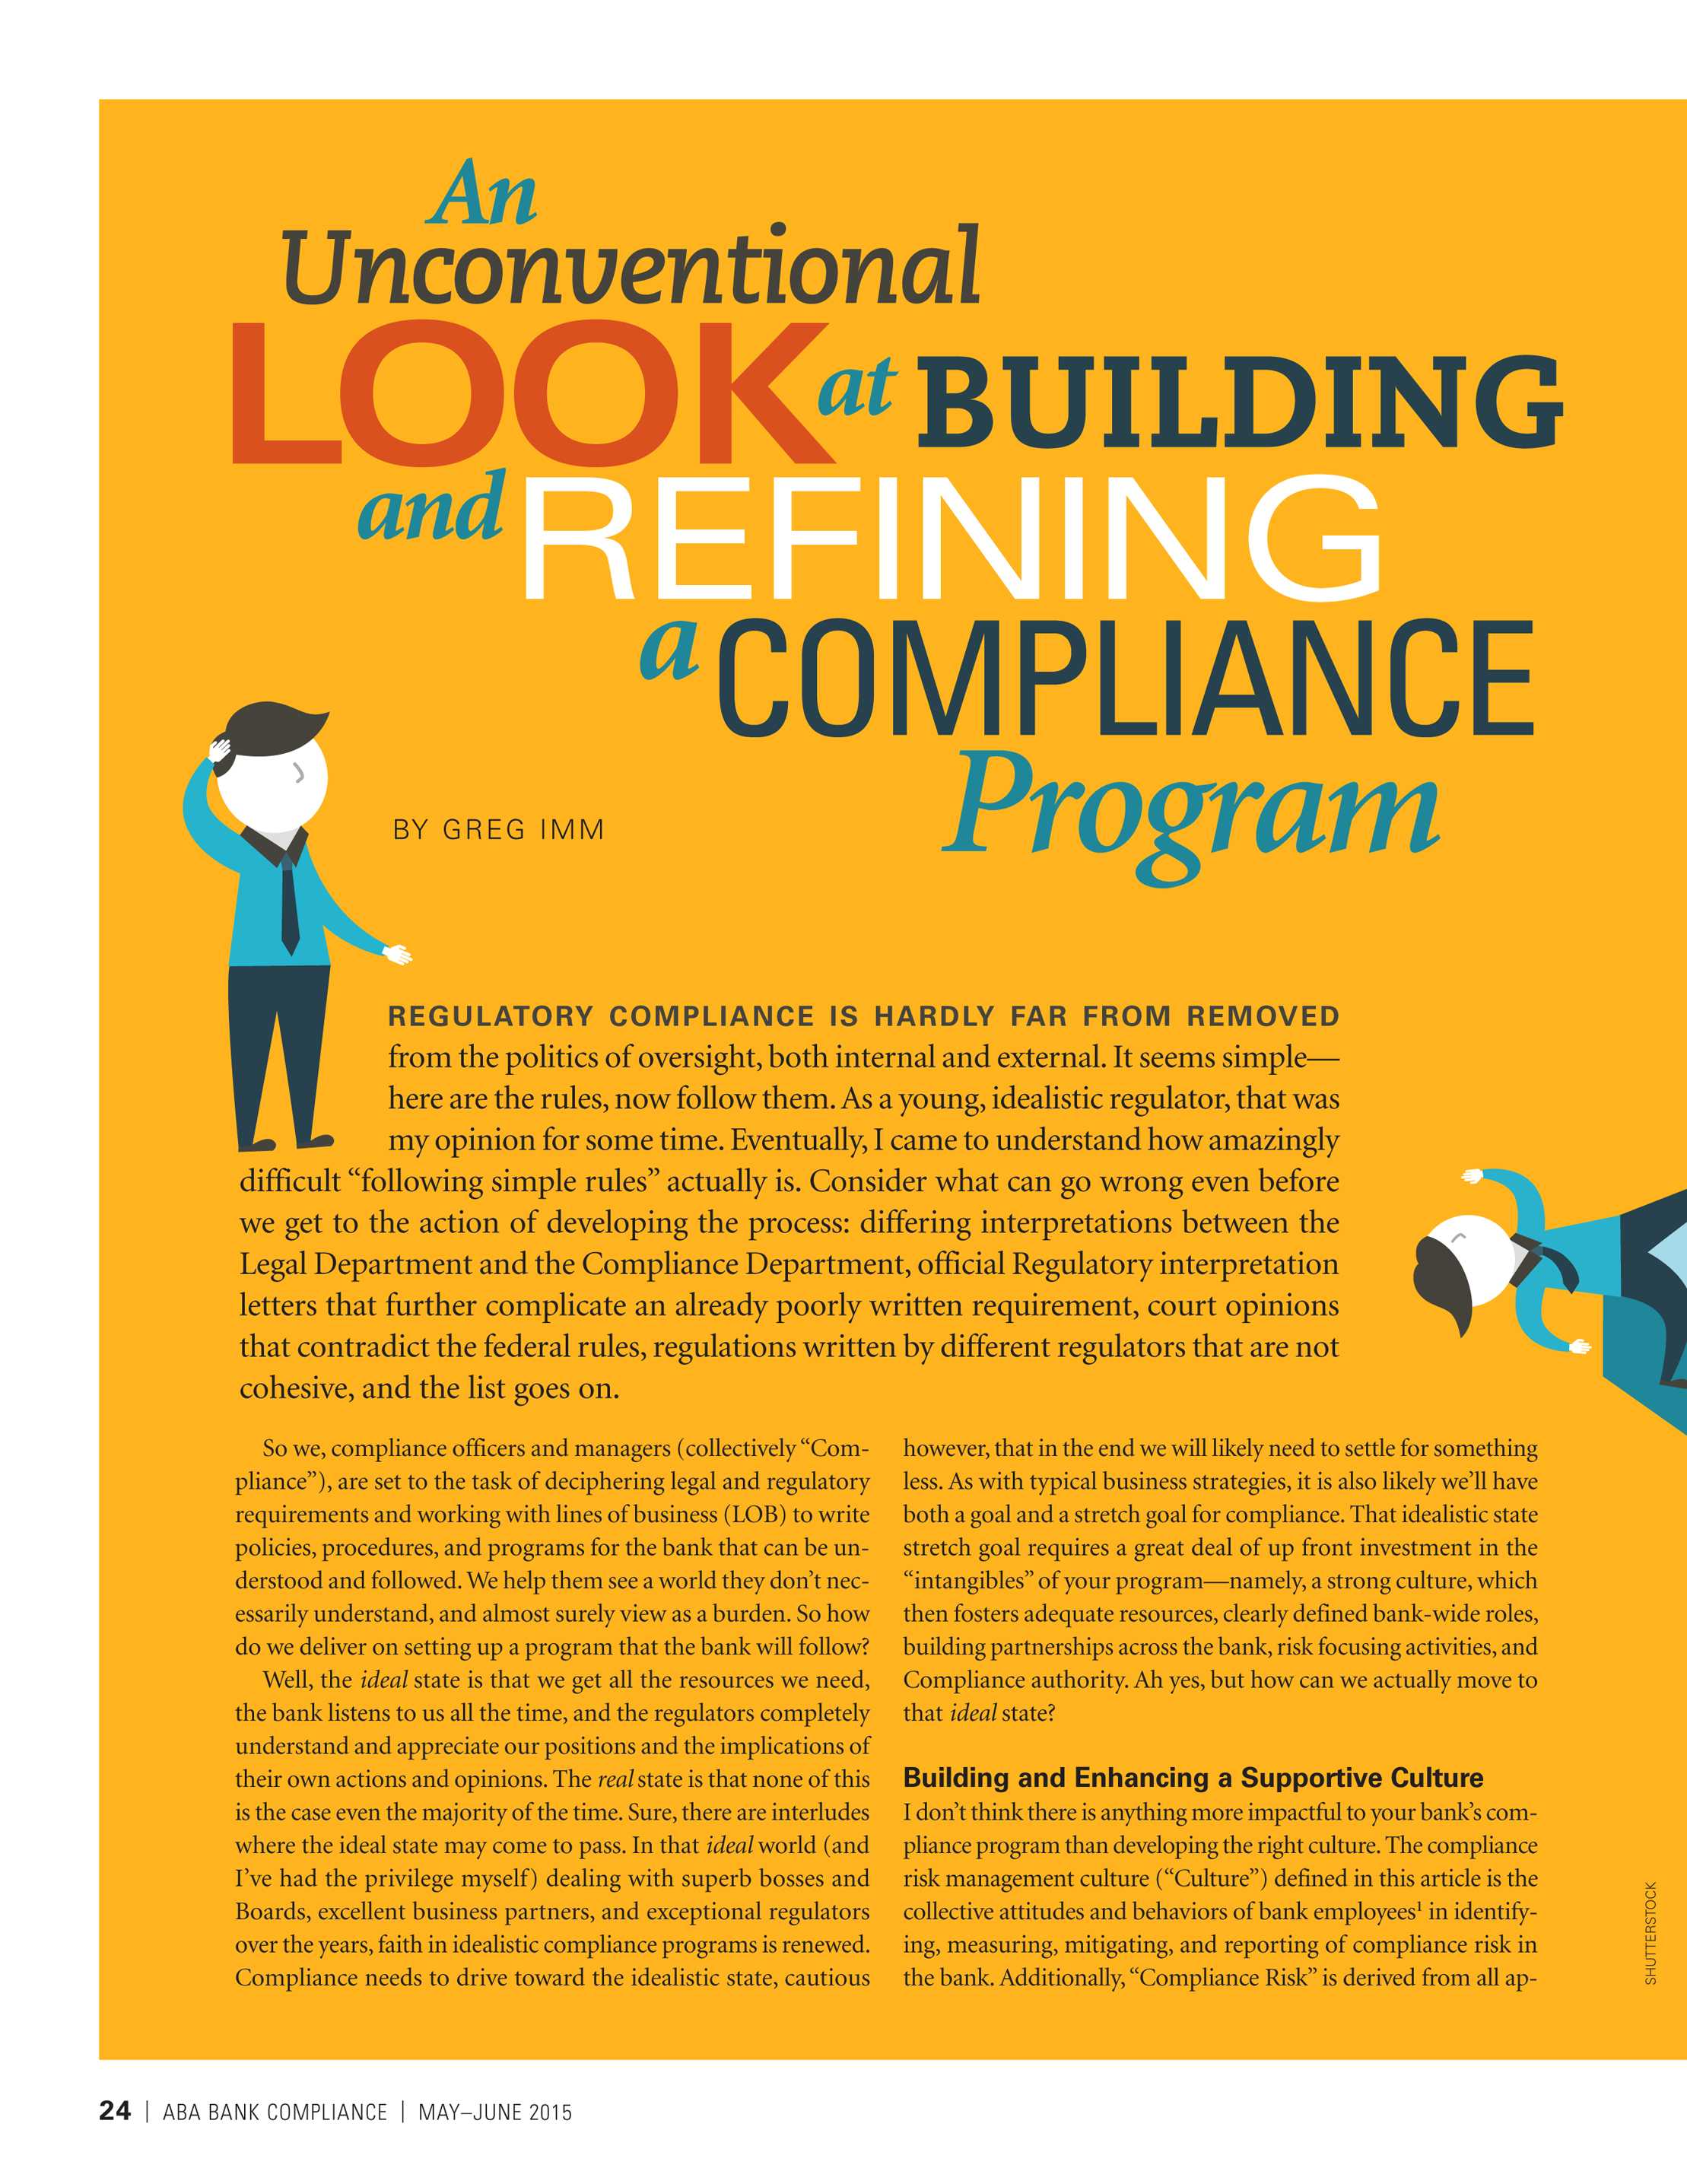 Imm 24 Aba Bank Compliance May June 2015 Page 24